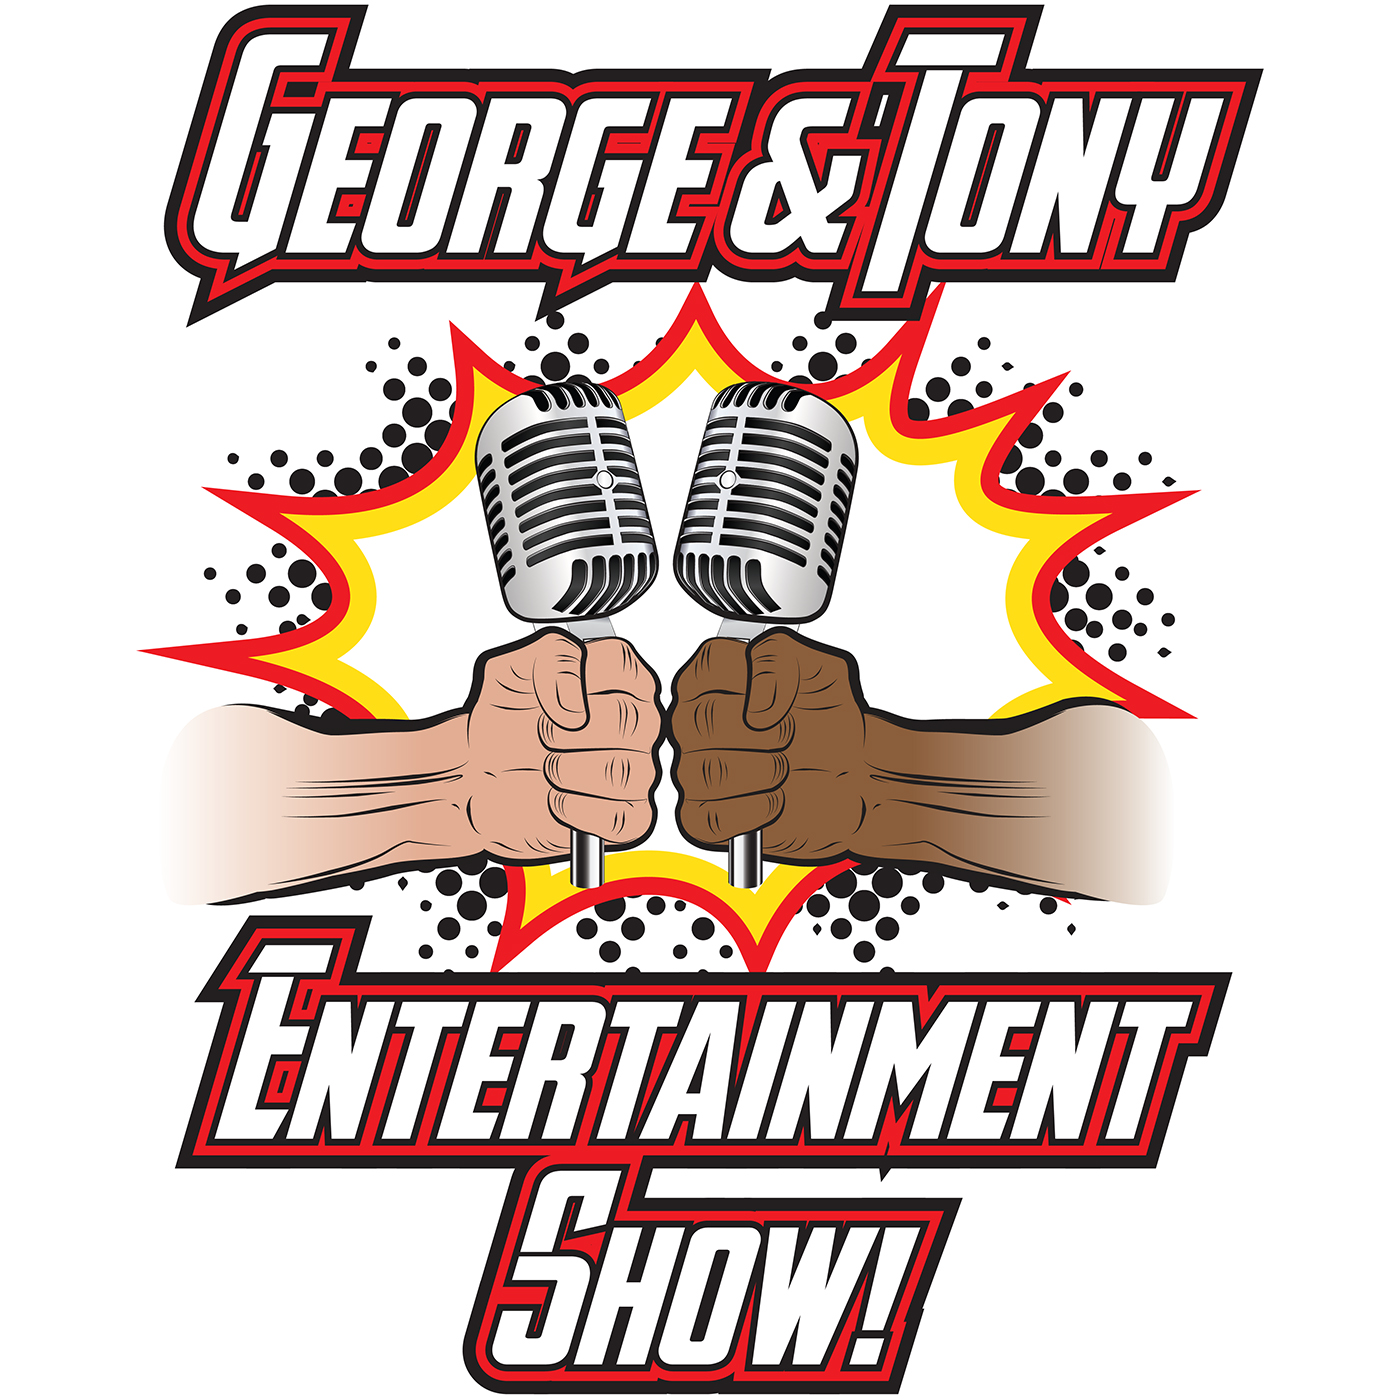 George and Tony Entertainment Show #129